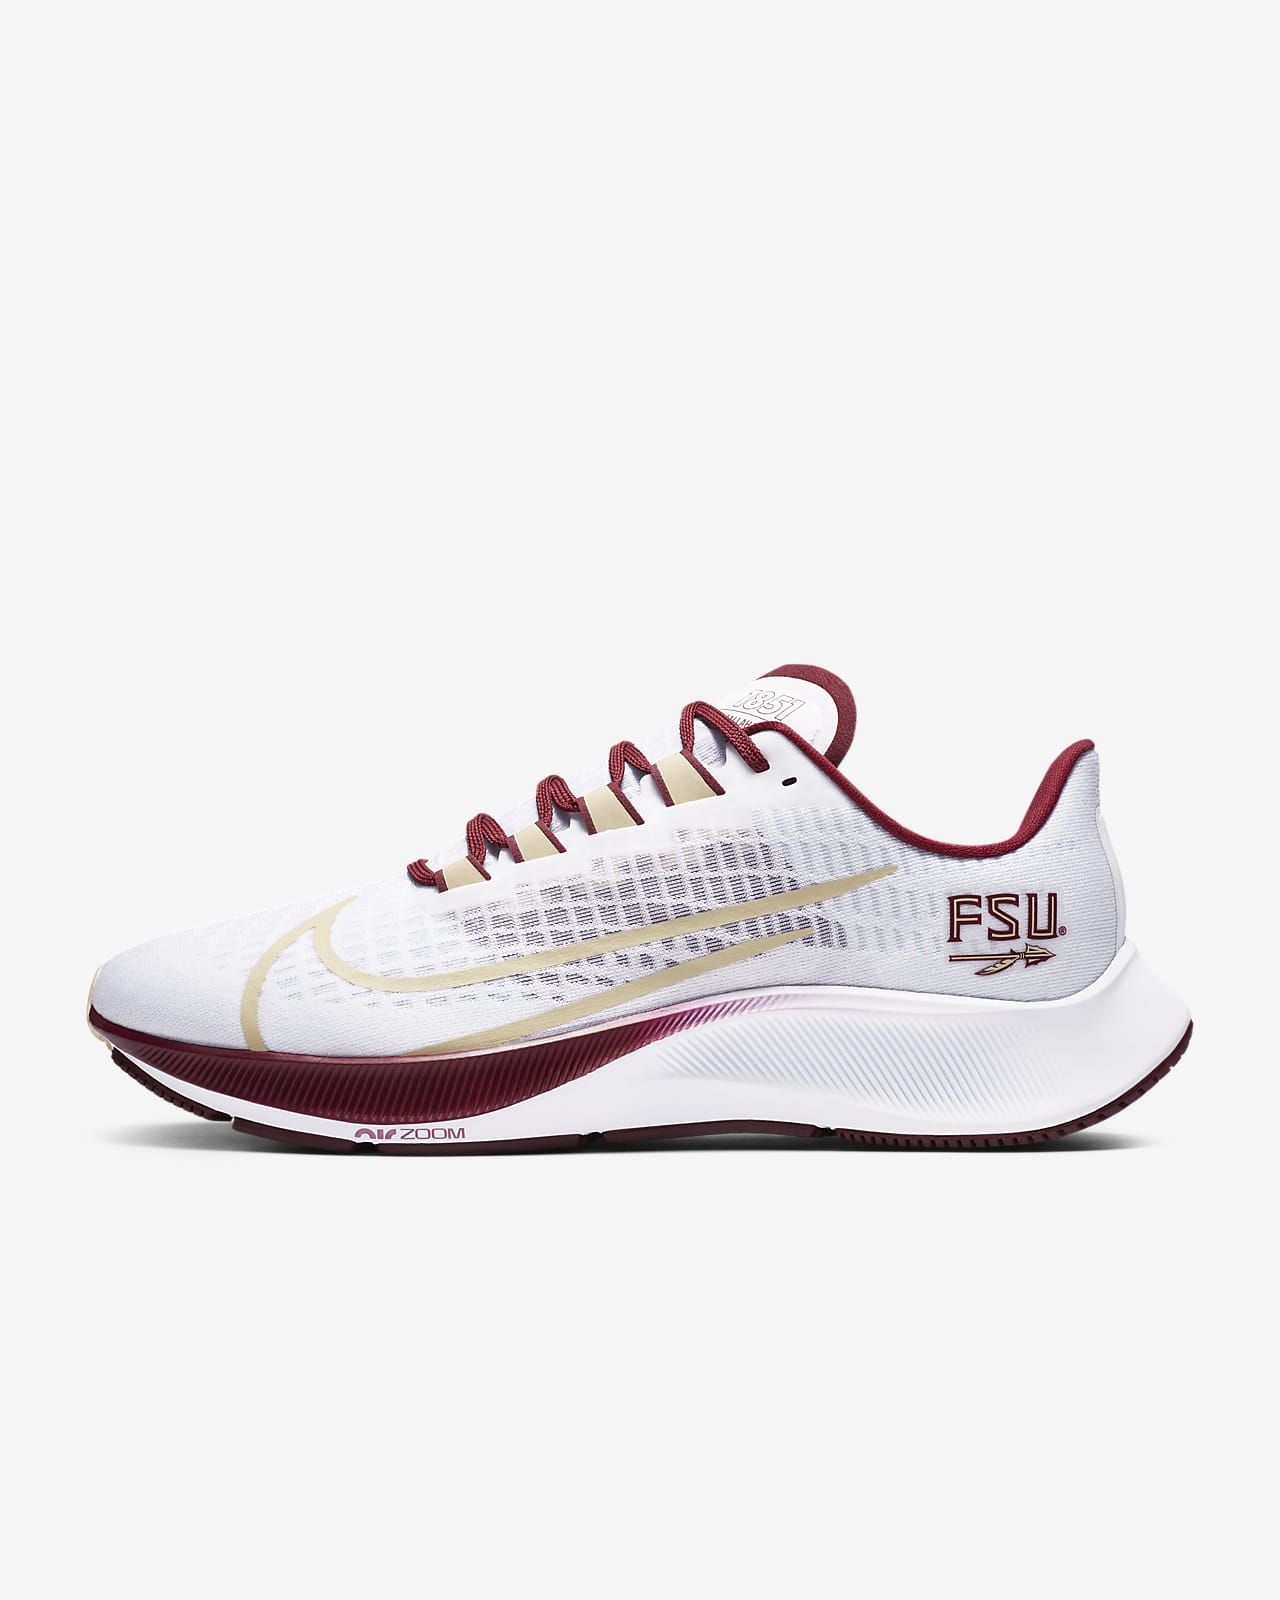 Nike College Zoom Pegasus 37 (Florida State) Running Shoe